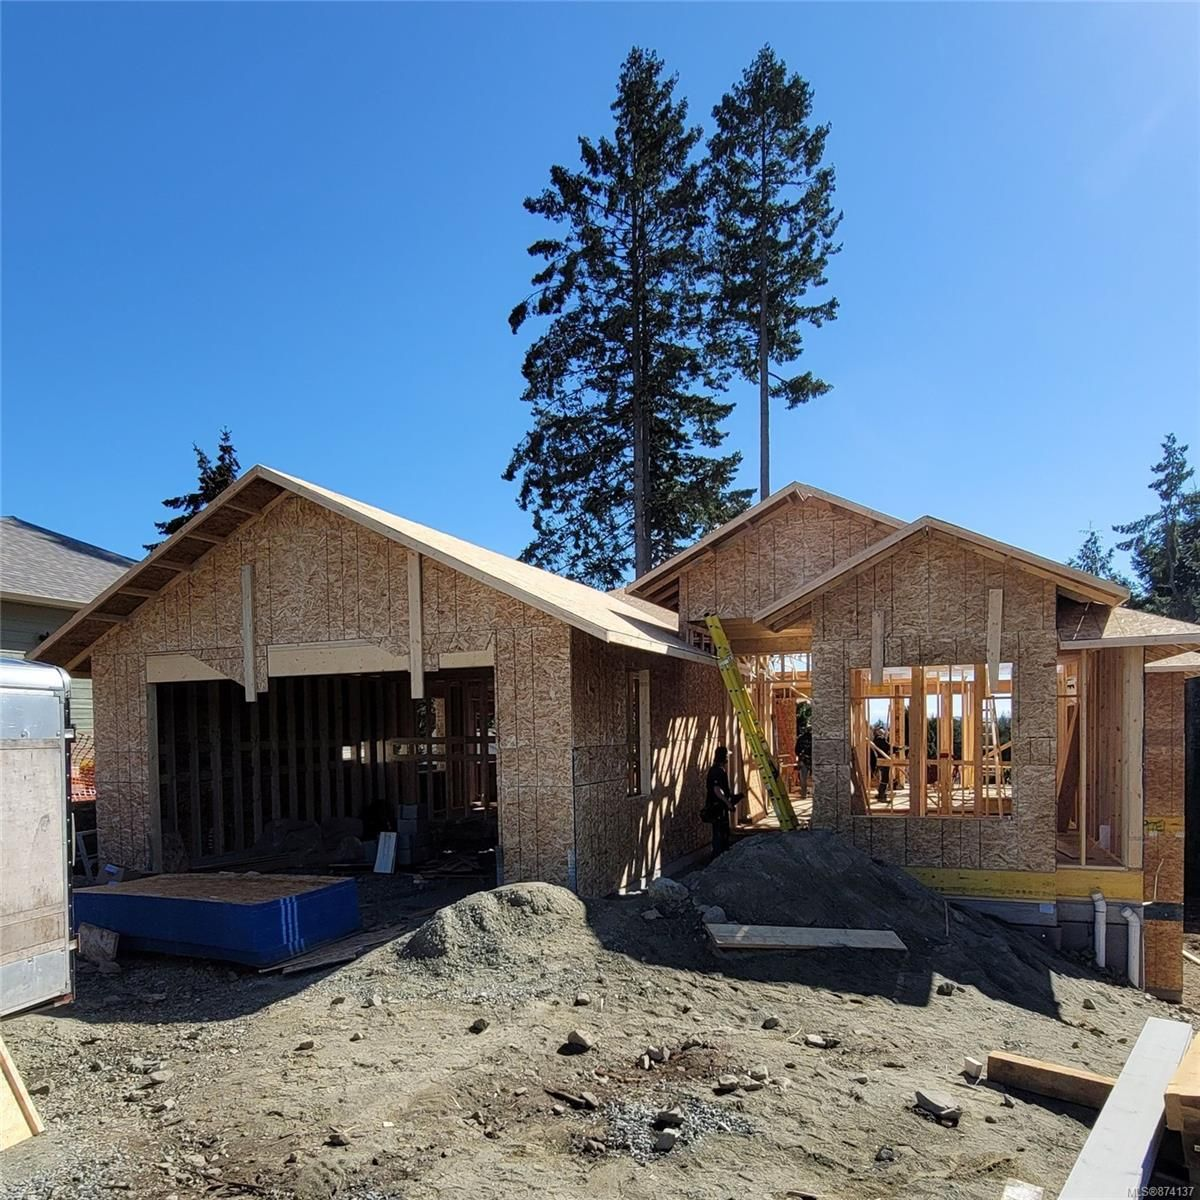 Main Photo: 124 Golden Oaks Cres in : Na Hammond Bay House for sale (Nanaimo)  : MLS®# 874137